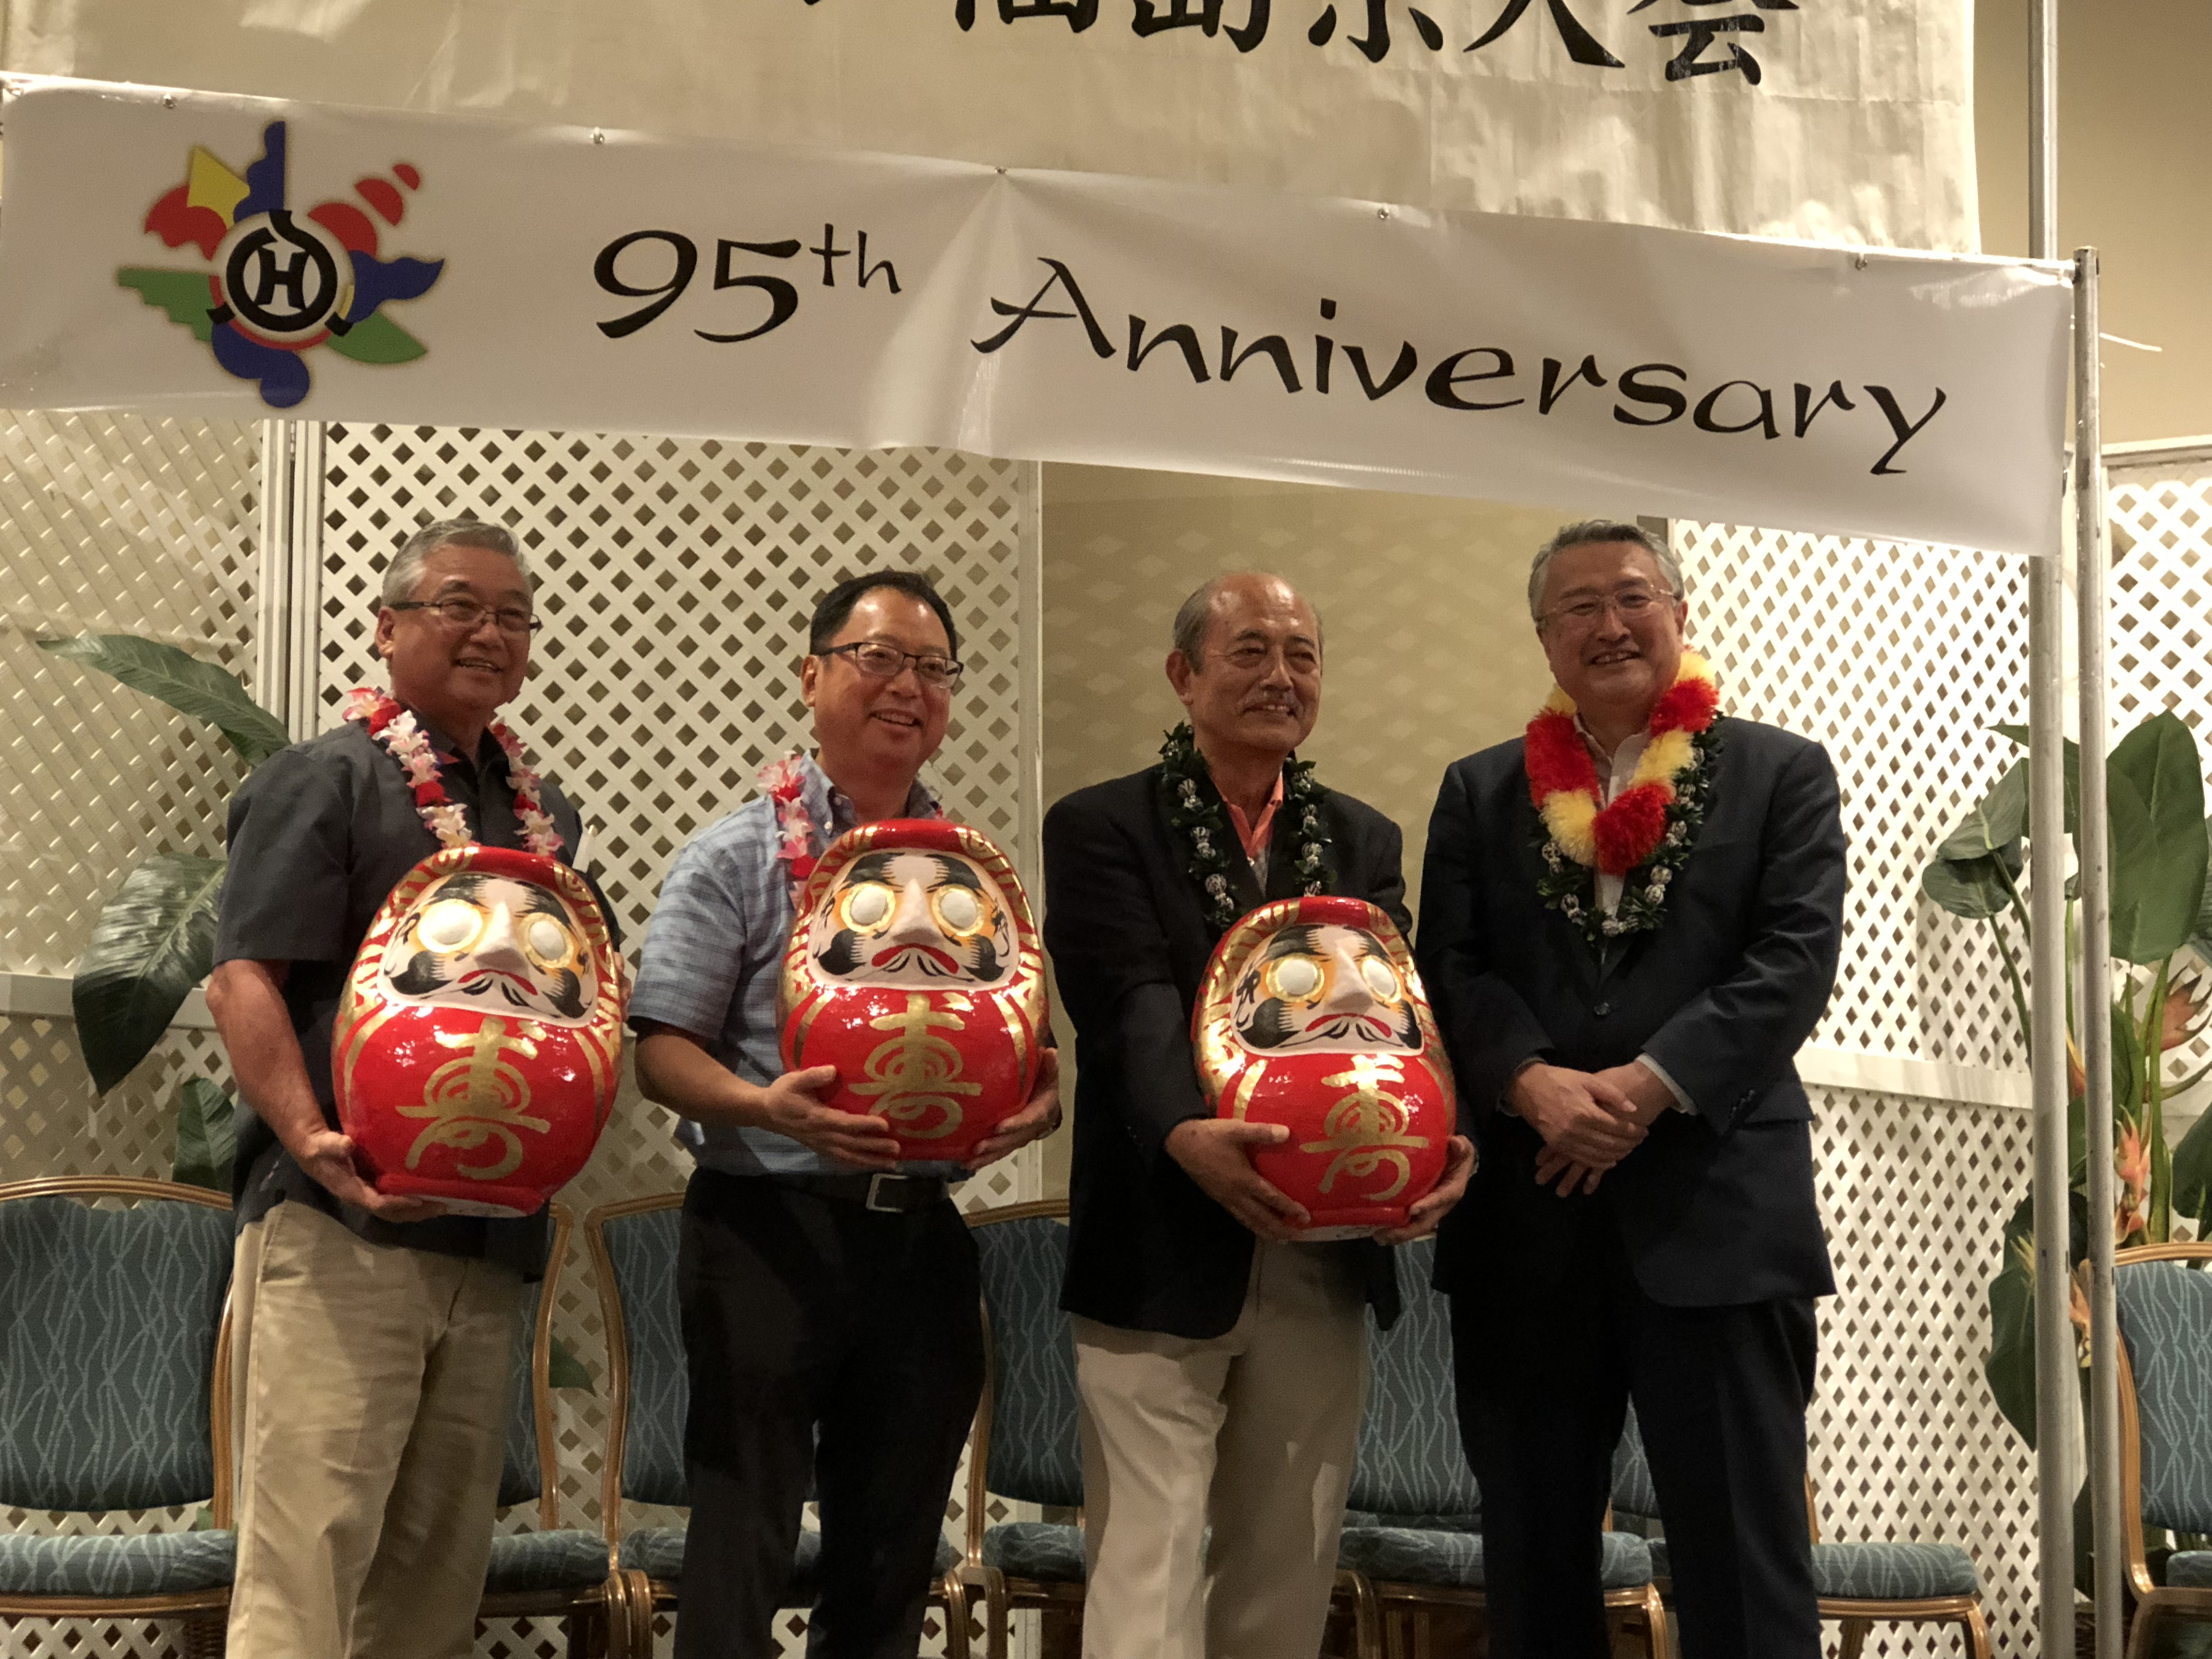 Fukushima Vice Gov. Masaaki Suzuki presented made in Fukushima daruma (traditional Japanese doll symbolizing perseverance and good luck) to the three Hawai'i Fukushima kenjinkai presidents (from left): Winston Towata of Hawaii-Shima Fukushima Kenjin Doshi Kai; Brian Moto of Maui Fukushima Kenjin Kai and Wallace Y. Watanabe of Honolulu Fukushima Kenjin Kai.